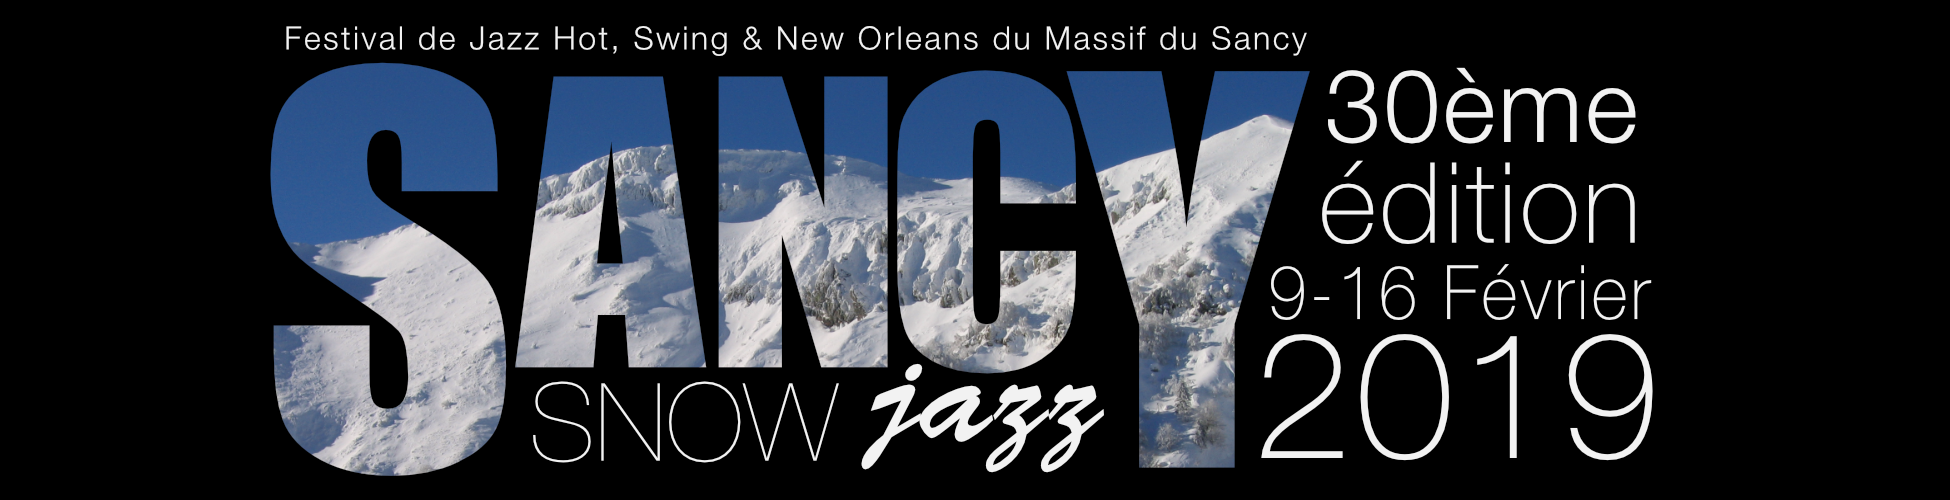 sancy_2019_snow_jazz